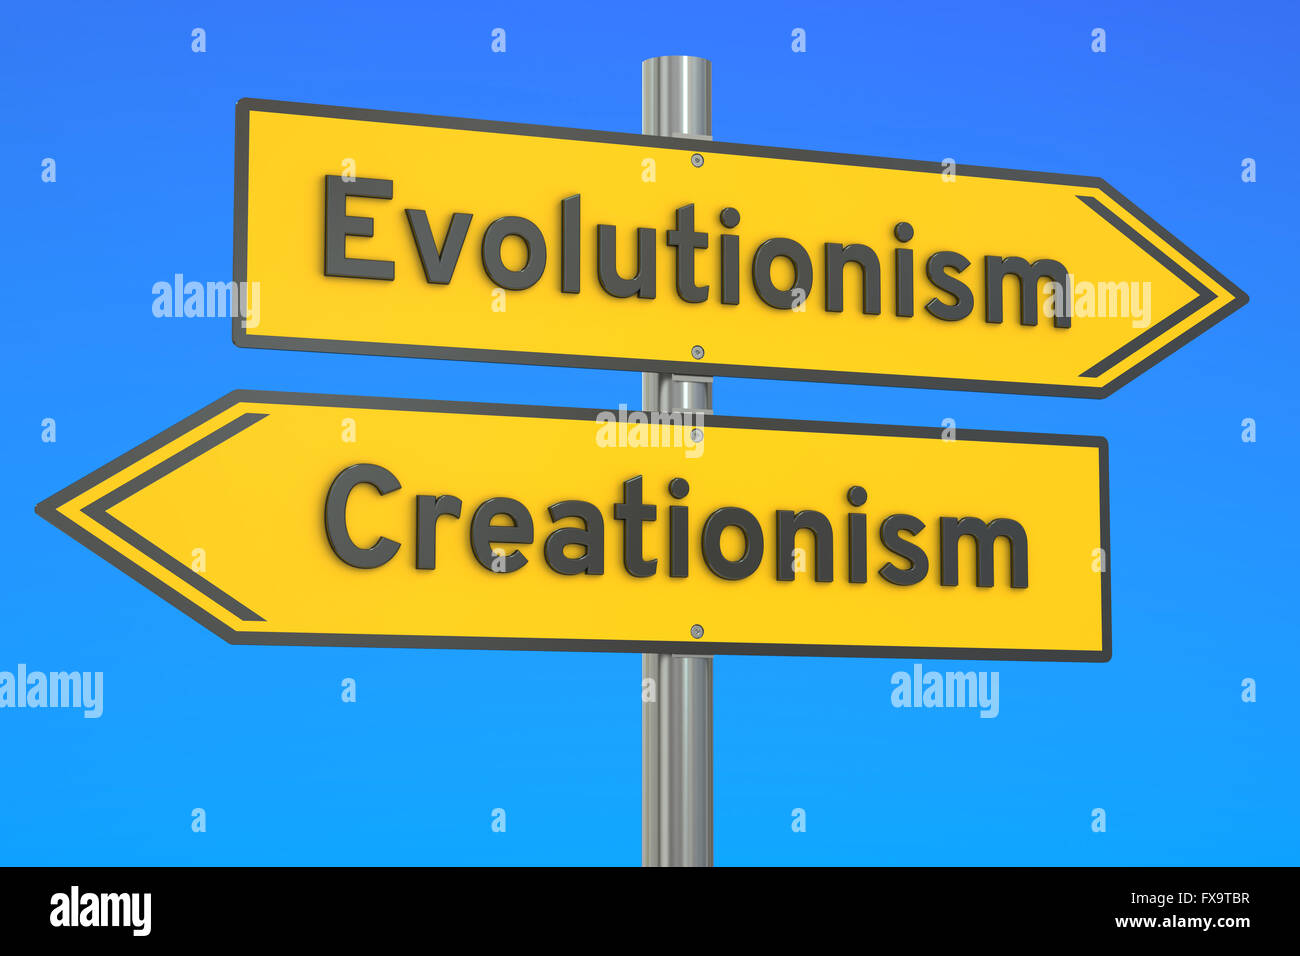 evolutionism vs creationism concept on the signpost, 3D rendering - Stock Image